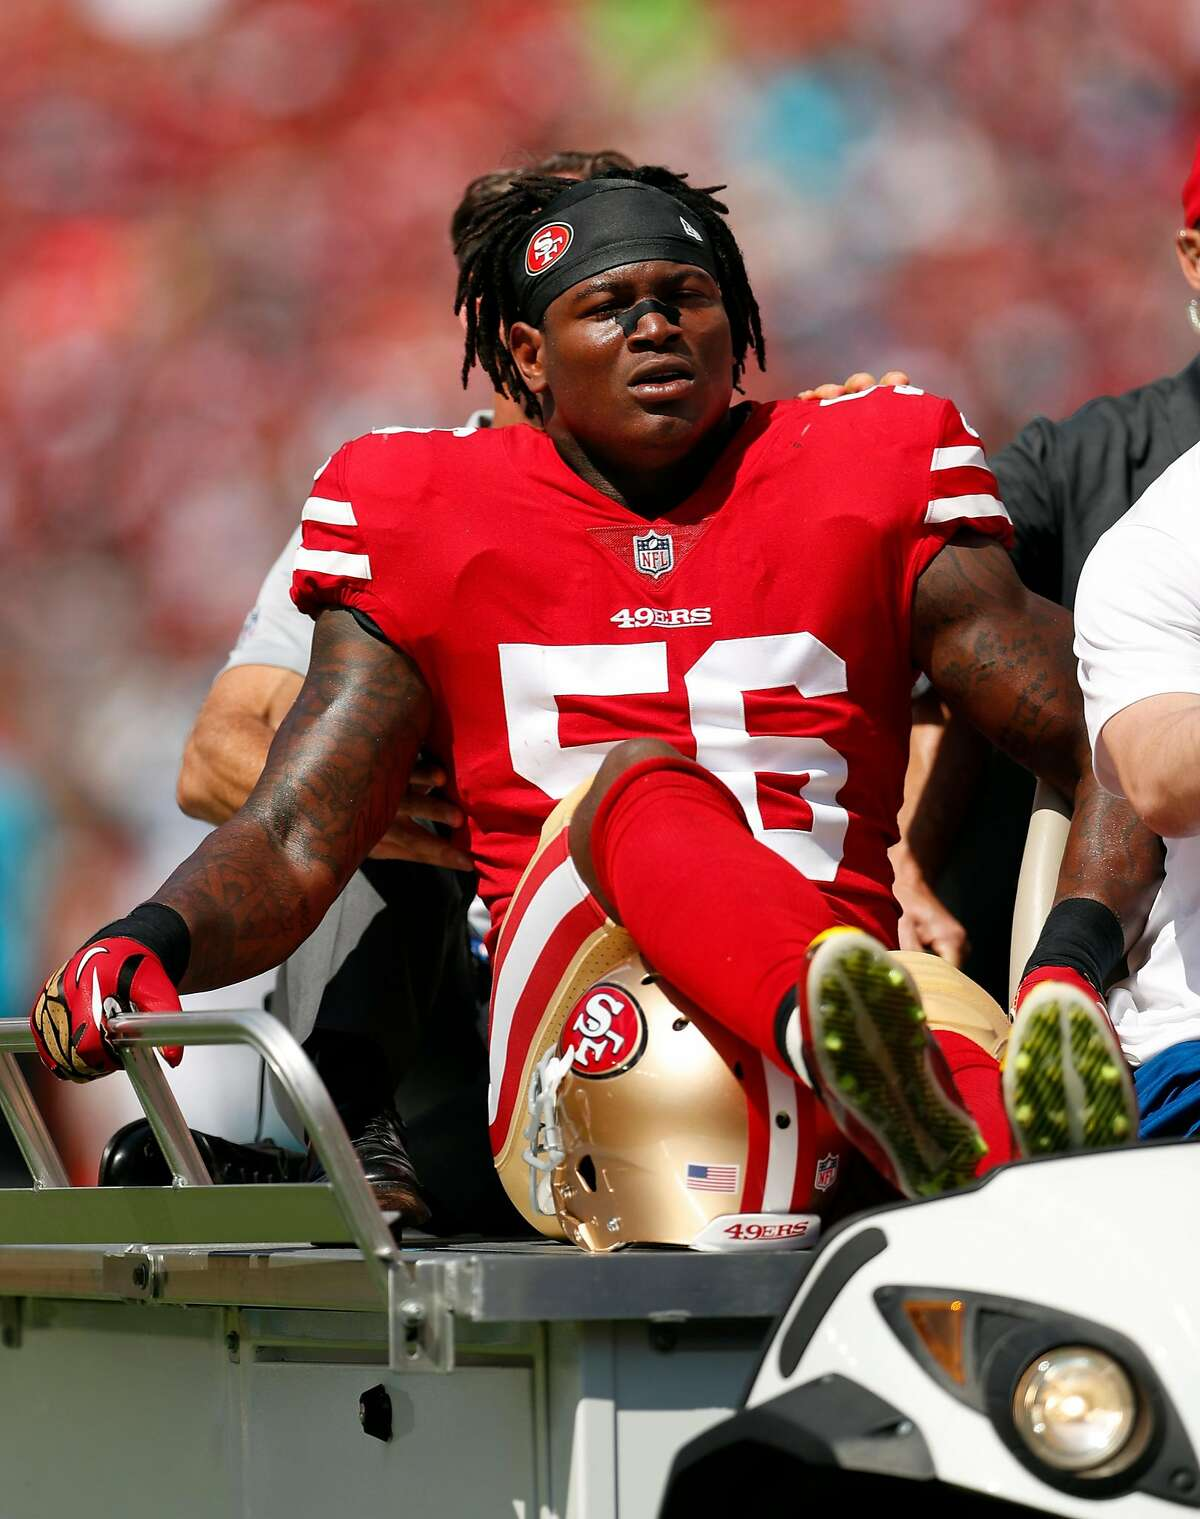 San Francisco 49ers' Reuben Foster is carted off the field after he was injured in 1st quarter during NFL game at Levi's Stadium in Santa Clara, Calif., on Sunday, September 10, 2017.